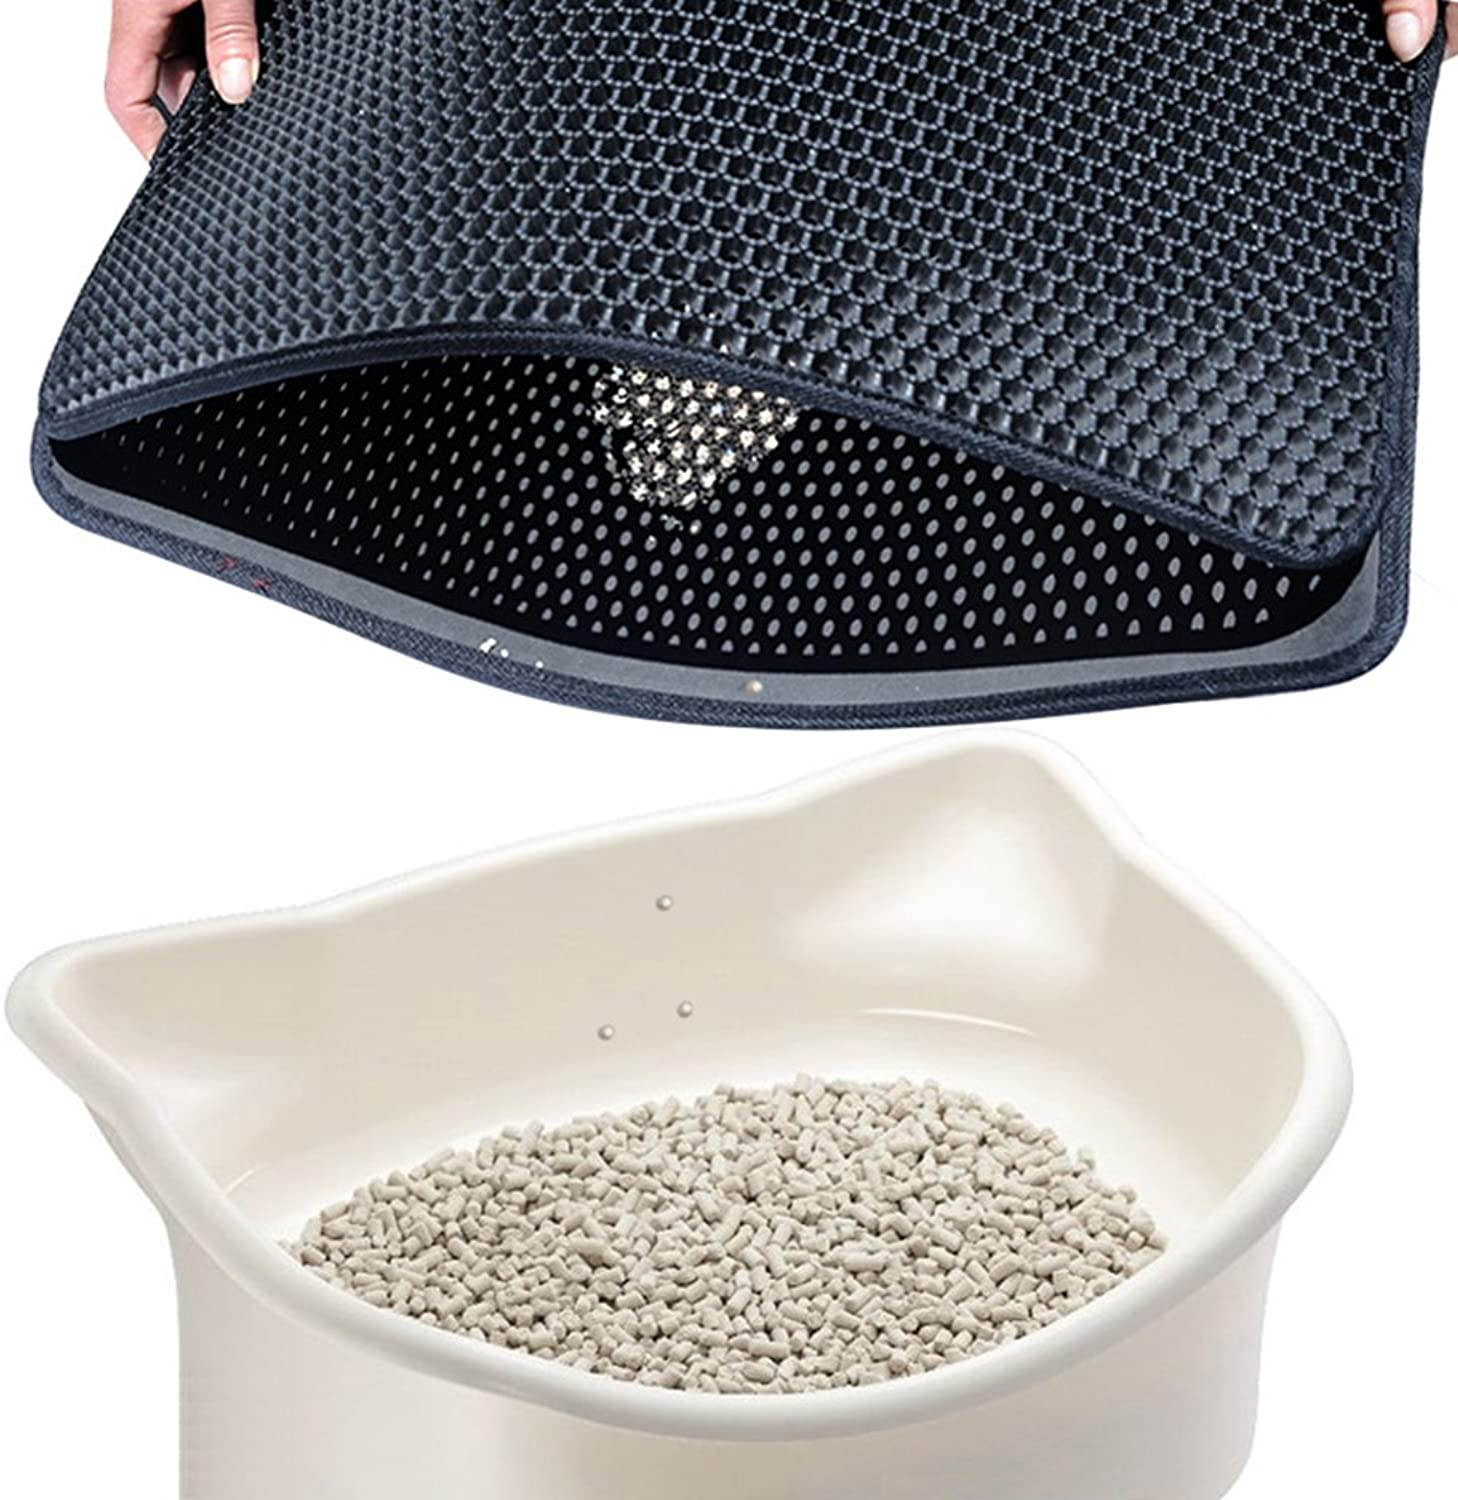 APMIX DoubleLayer Honeycomb Cat Litter Mat Phthalate Free, Traps Litter Premium Cat Box ,Durable and Easy to Clean.